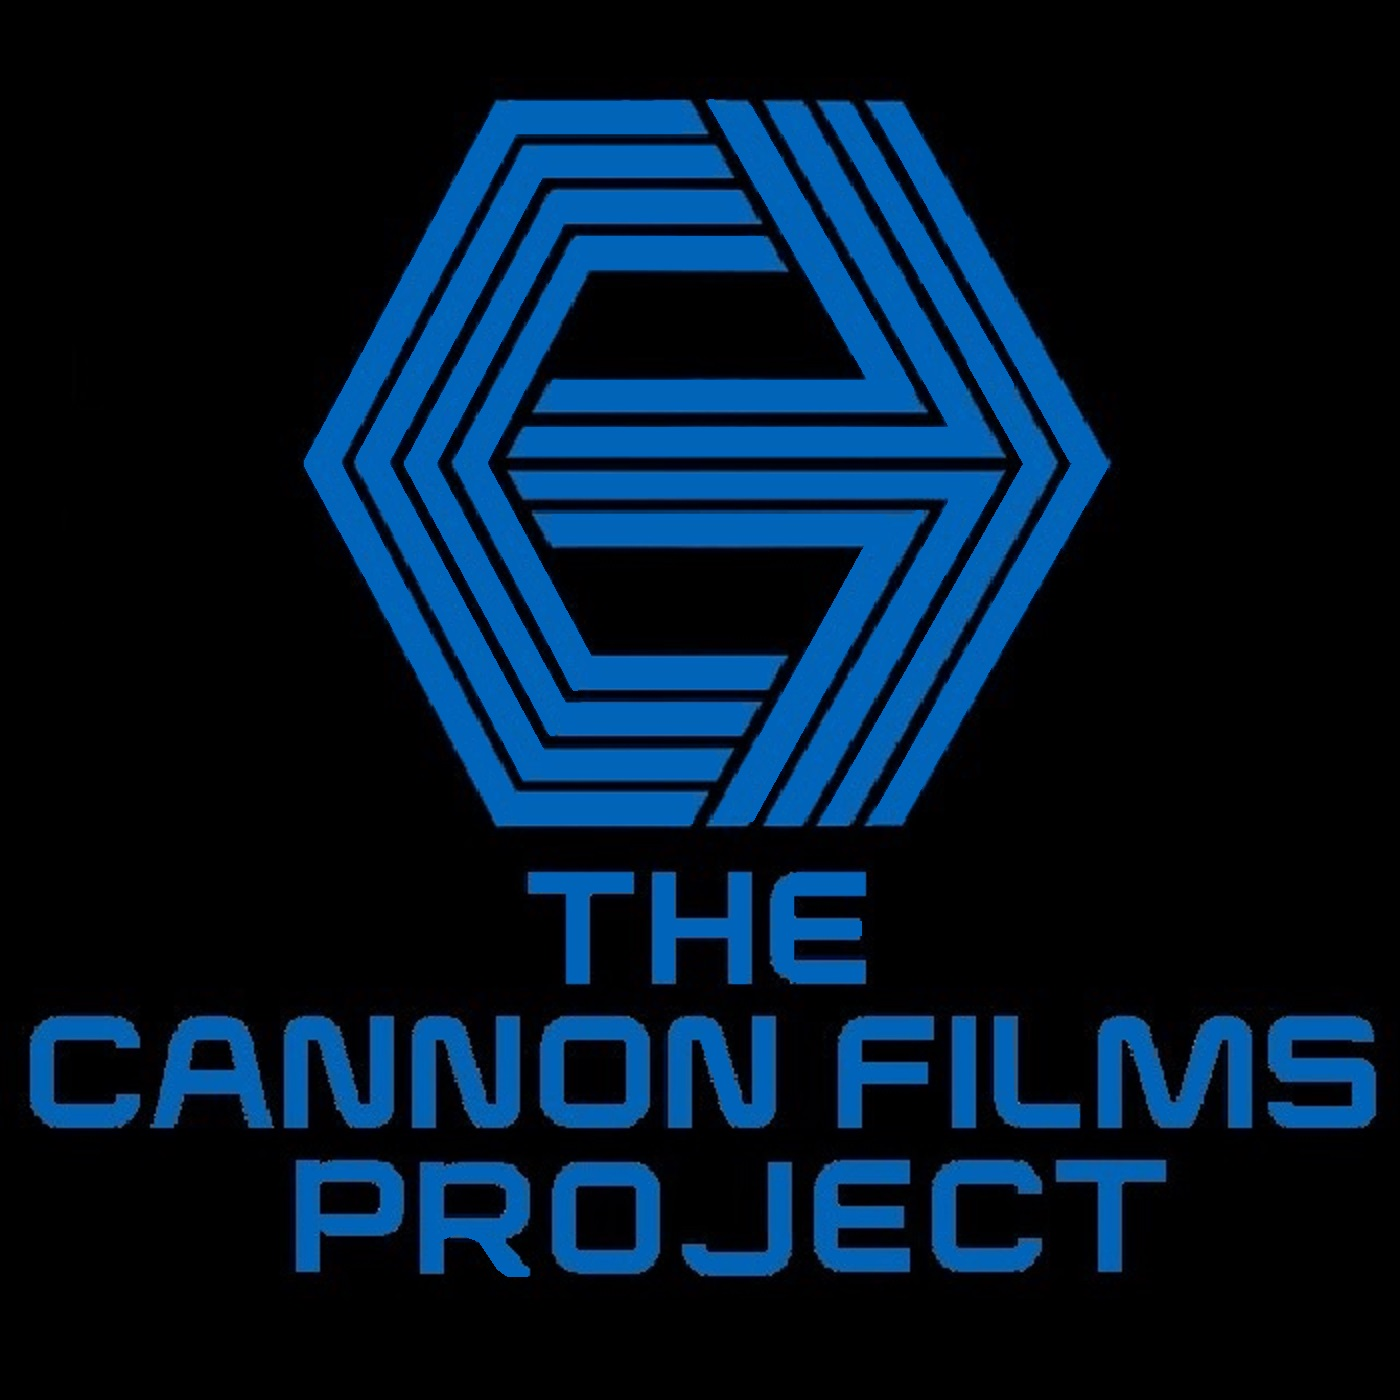 The Cannon Films Project